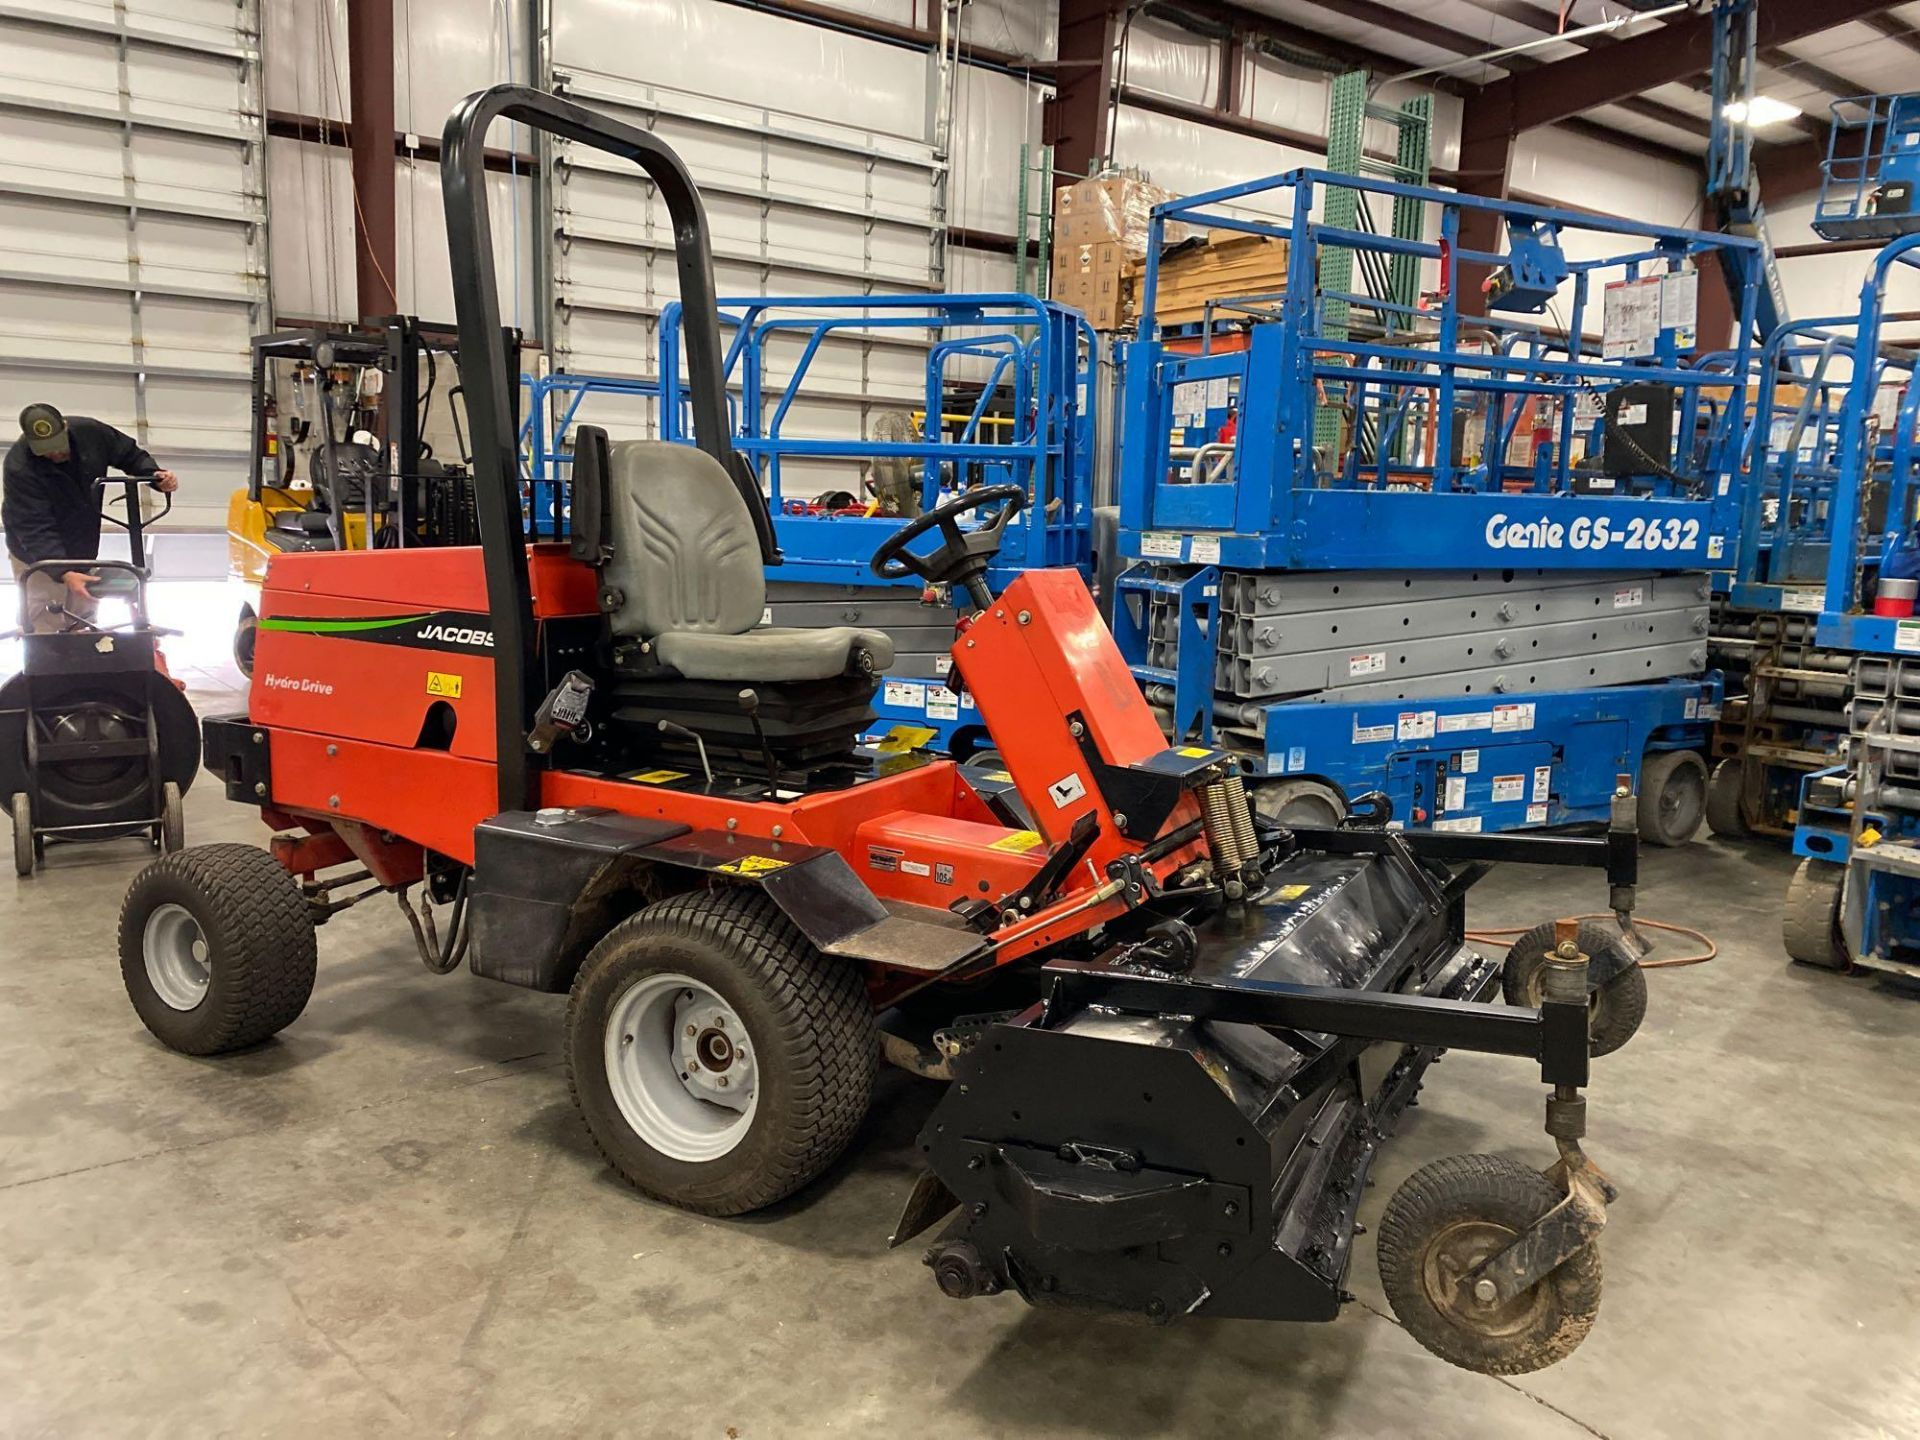 Lot 100 - JACOBSON HYDRO DRIVE RIDE ON MOWER, 1,740 HOURS SHOWING, KUBOTA DIESEL, RUNS AND OPERATES